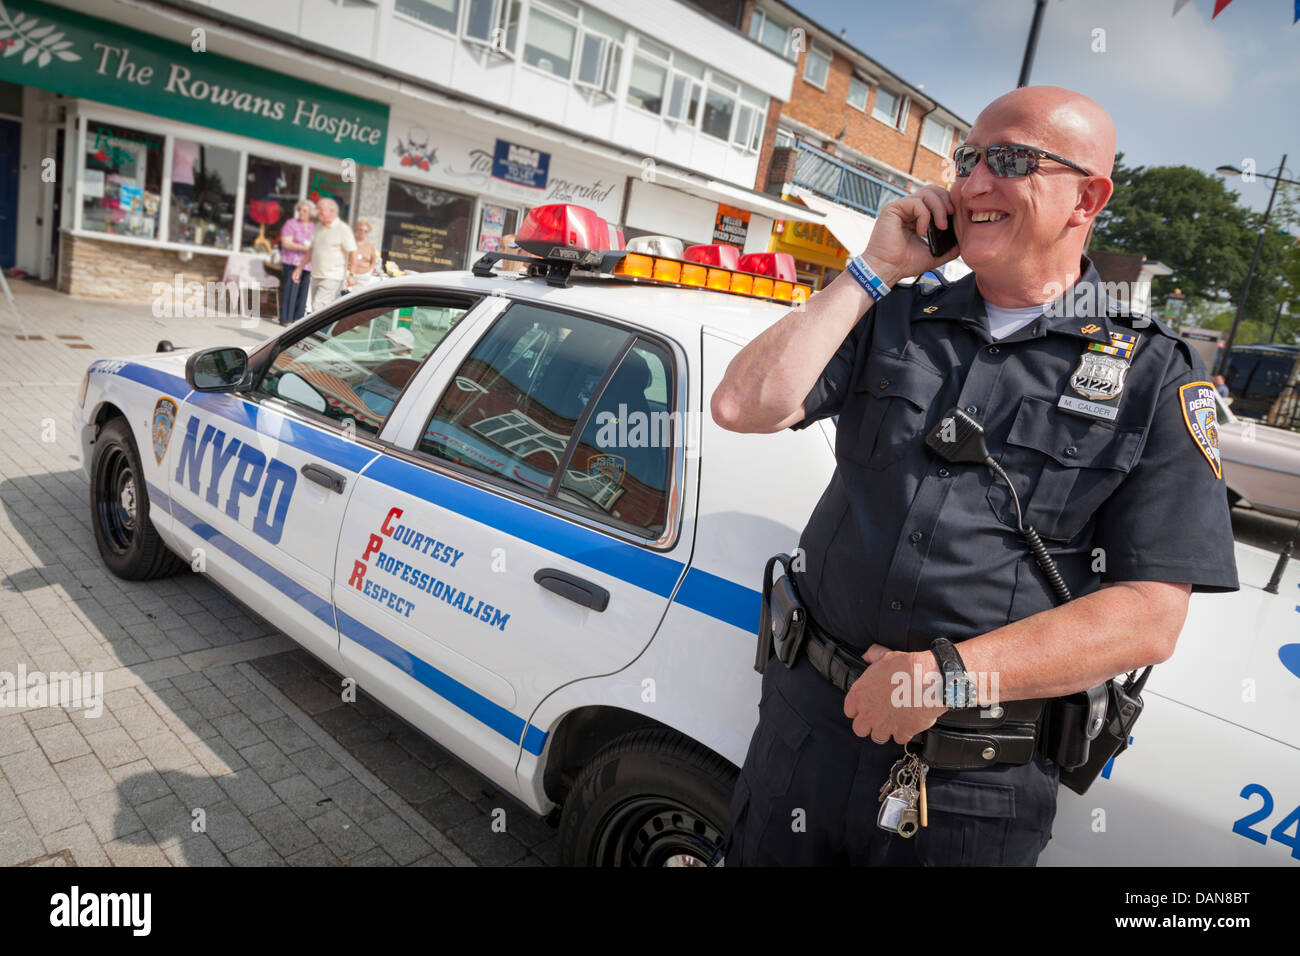 enthusiast dressed as police man leaning against NYPD classic car at show - Stock Image